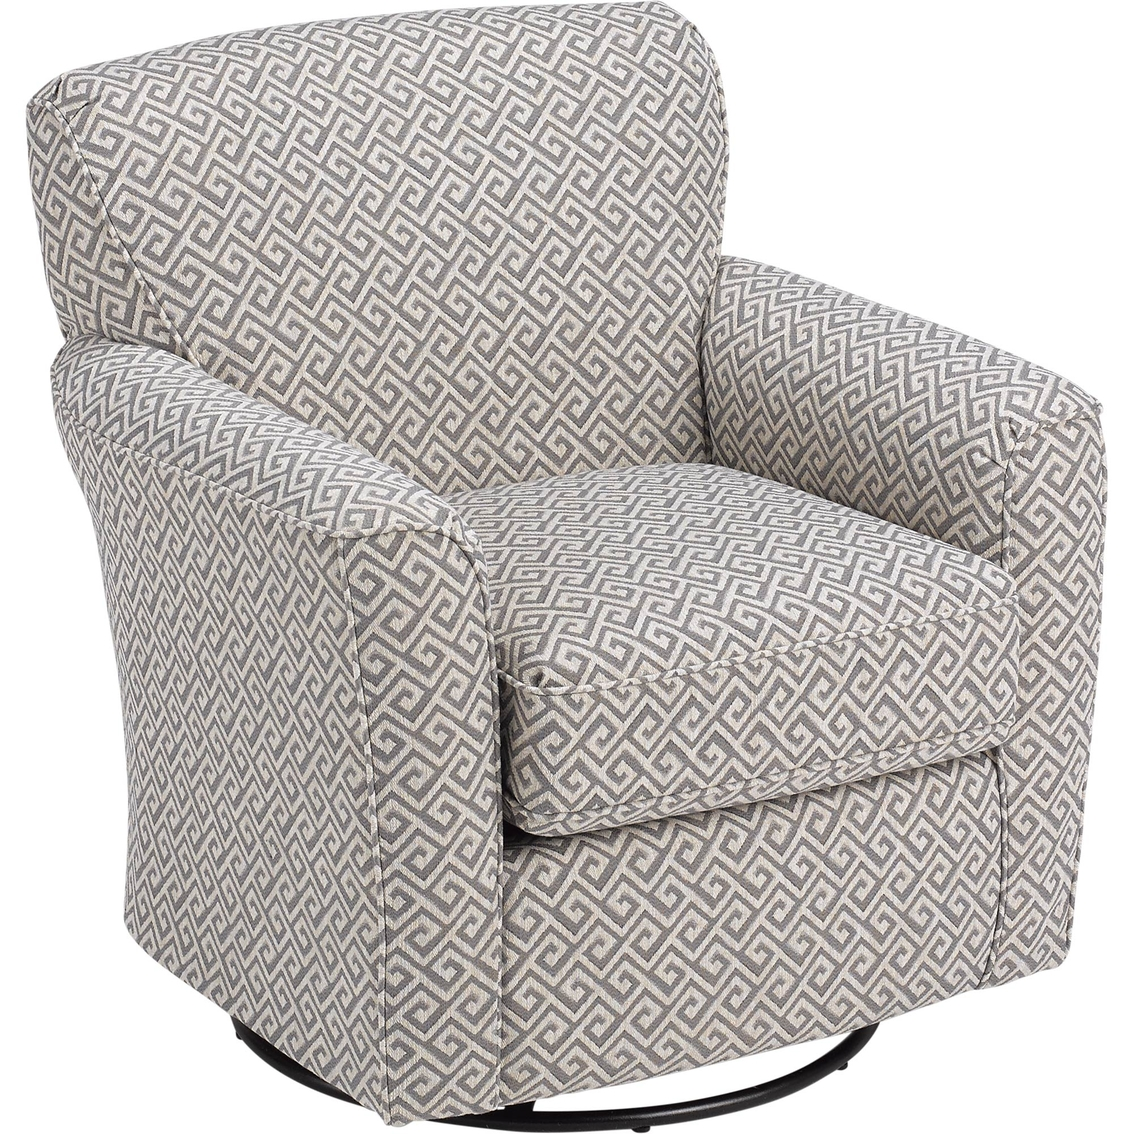 Best Home Furnishings Kaylee Swivel Glider Chairs